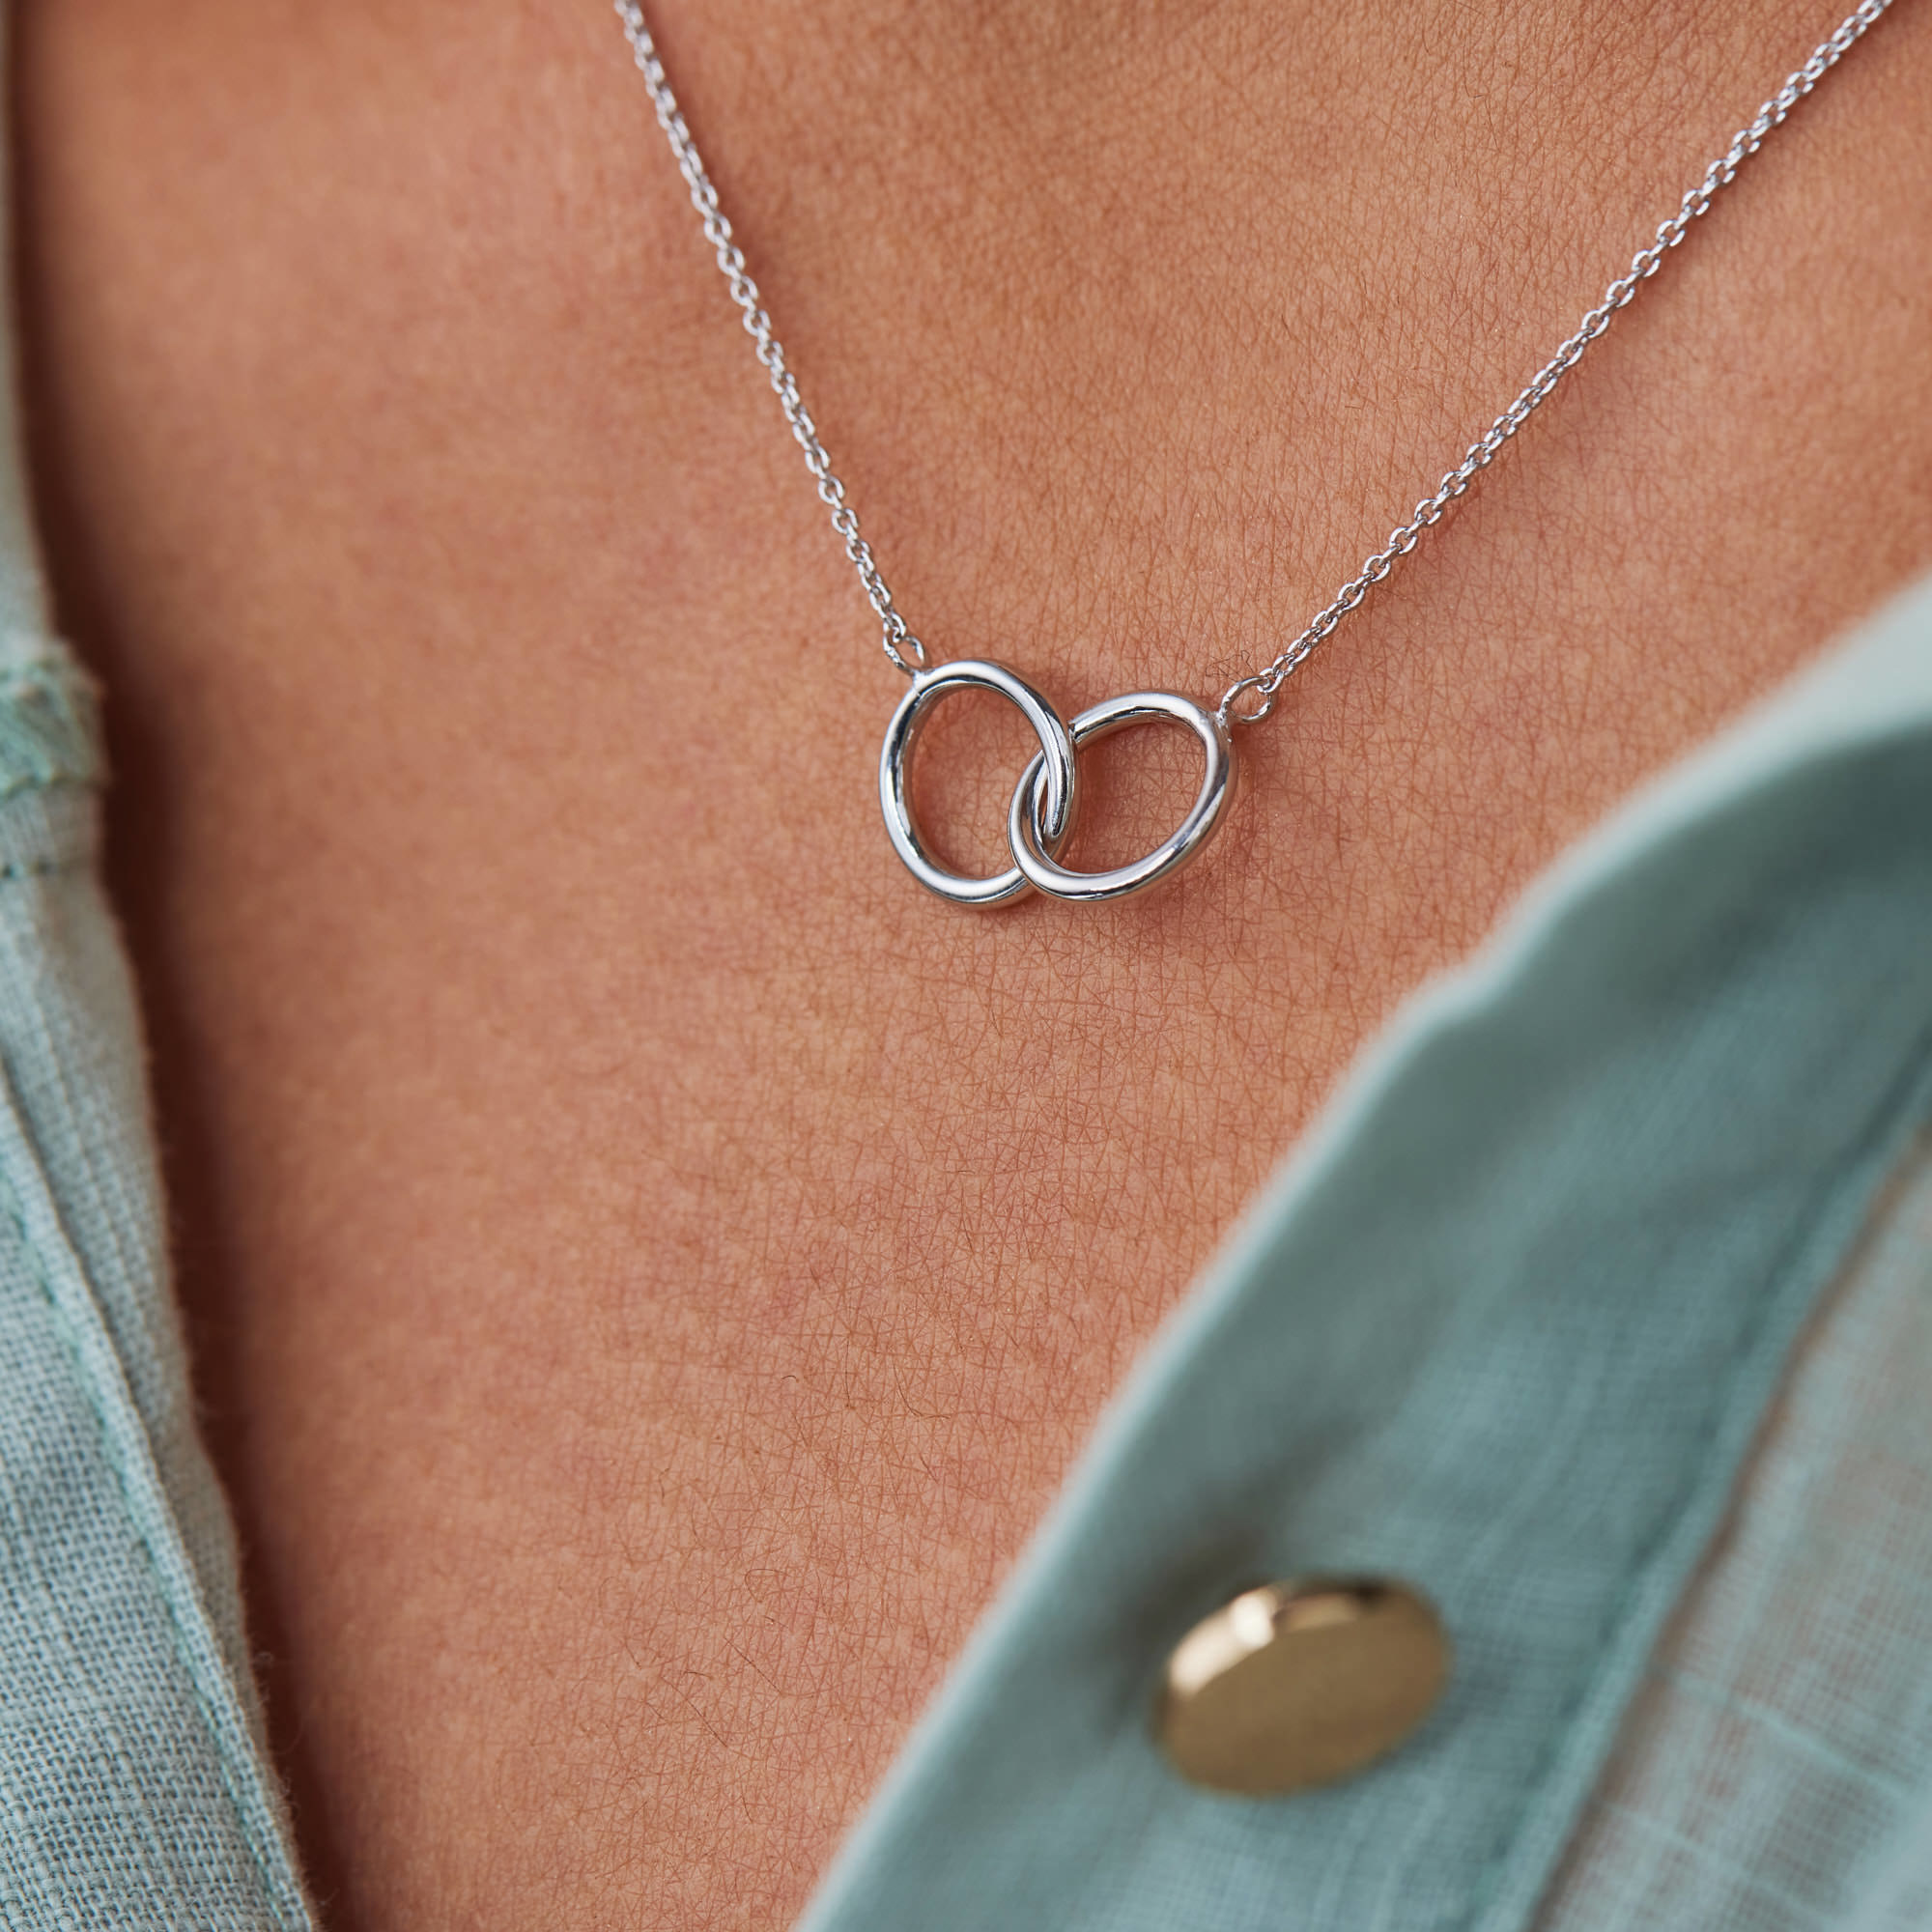 Selected Jewels Zoé 925 sterling silver necklace with circles